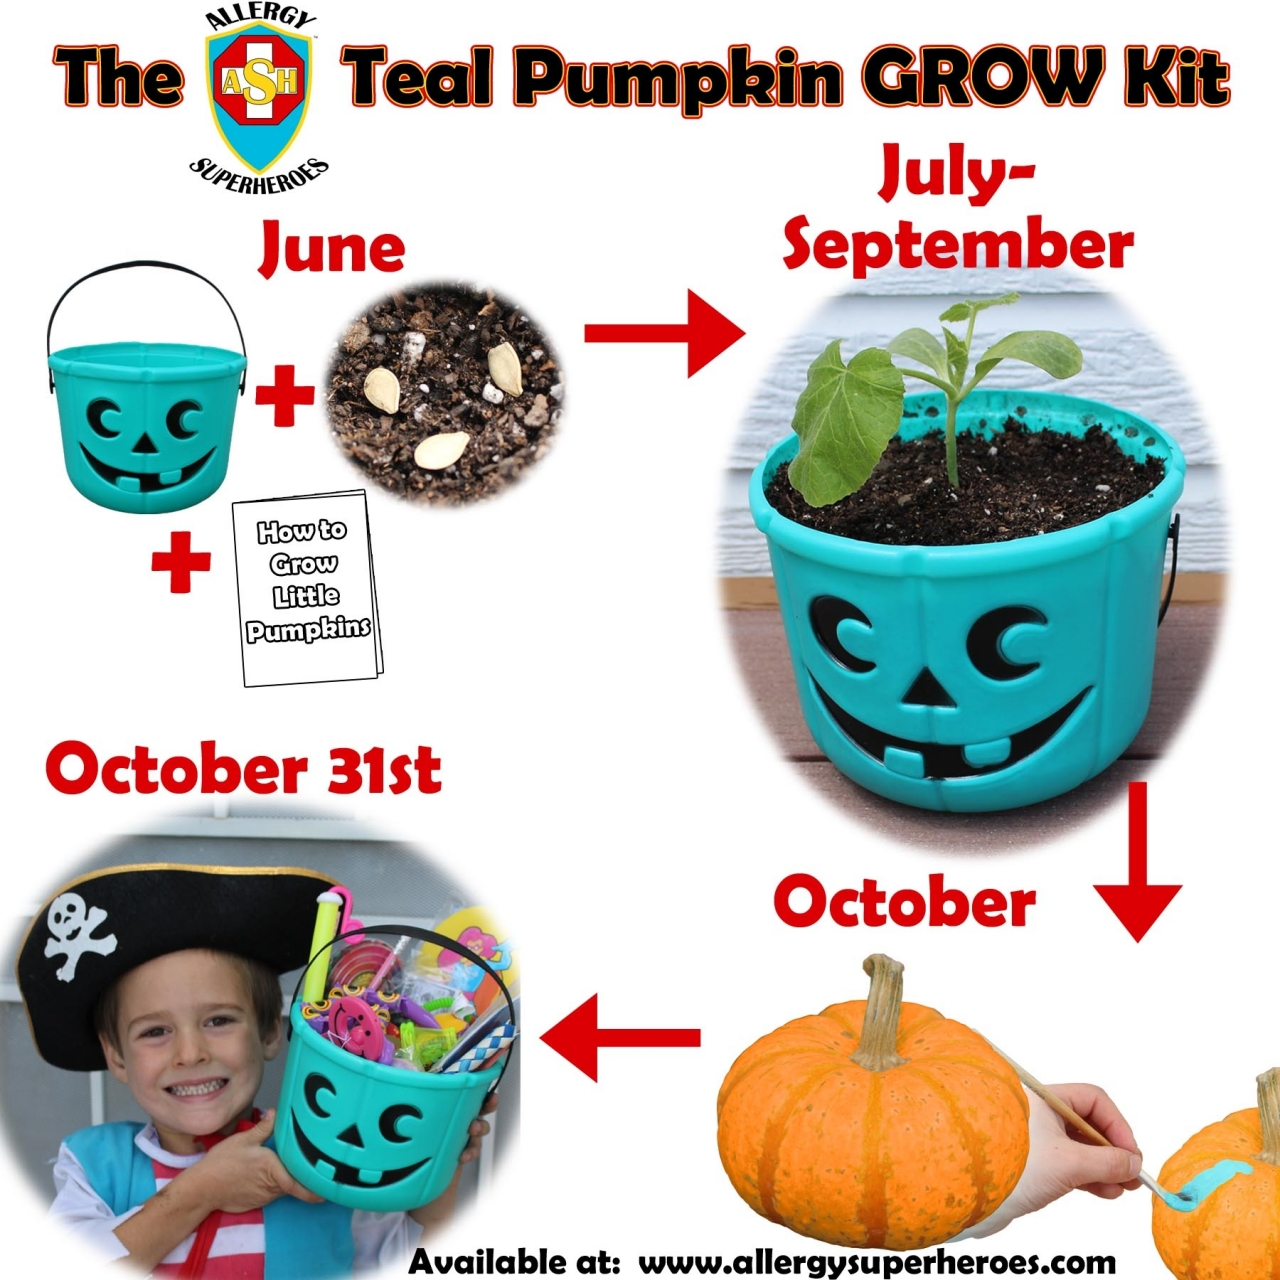 Teal Pumpkin Grow BucketTimeline Food Allergy Superheroes.jpg